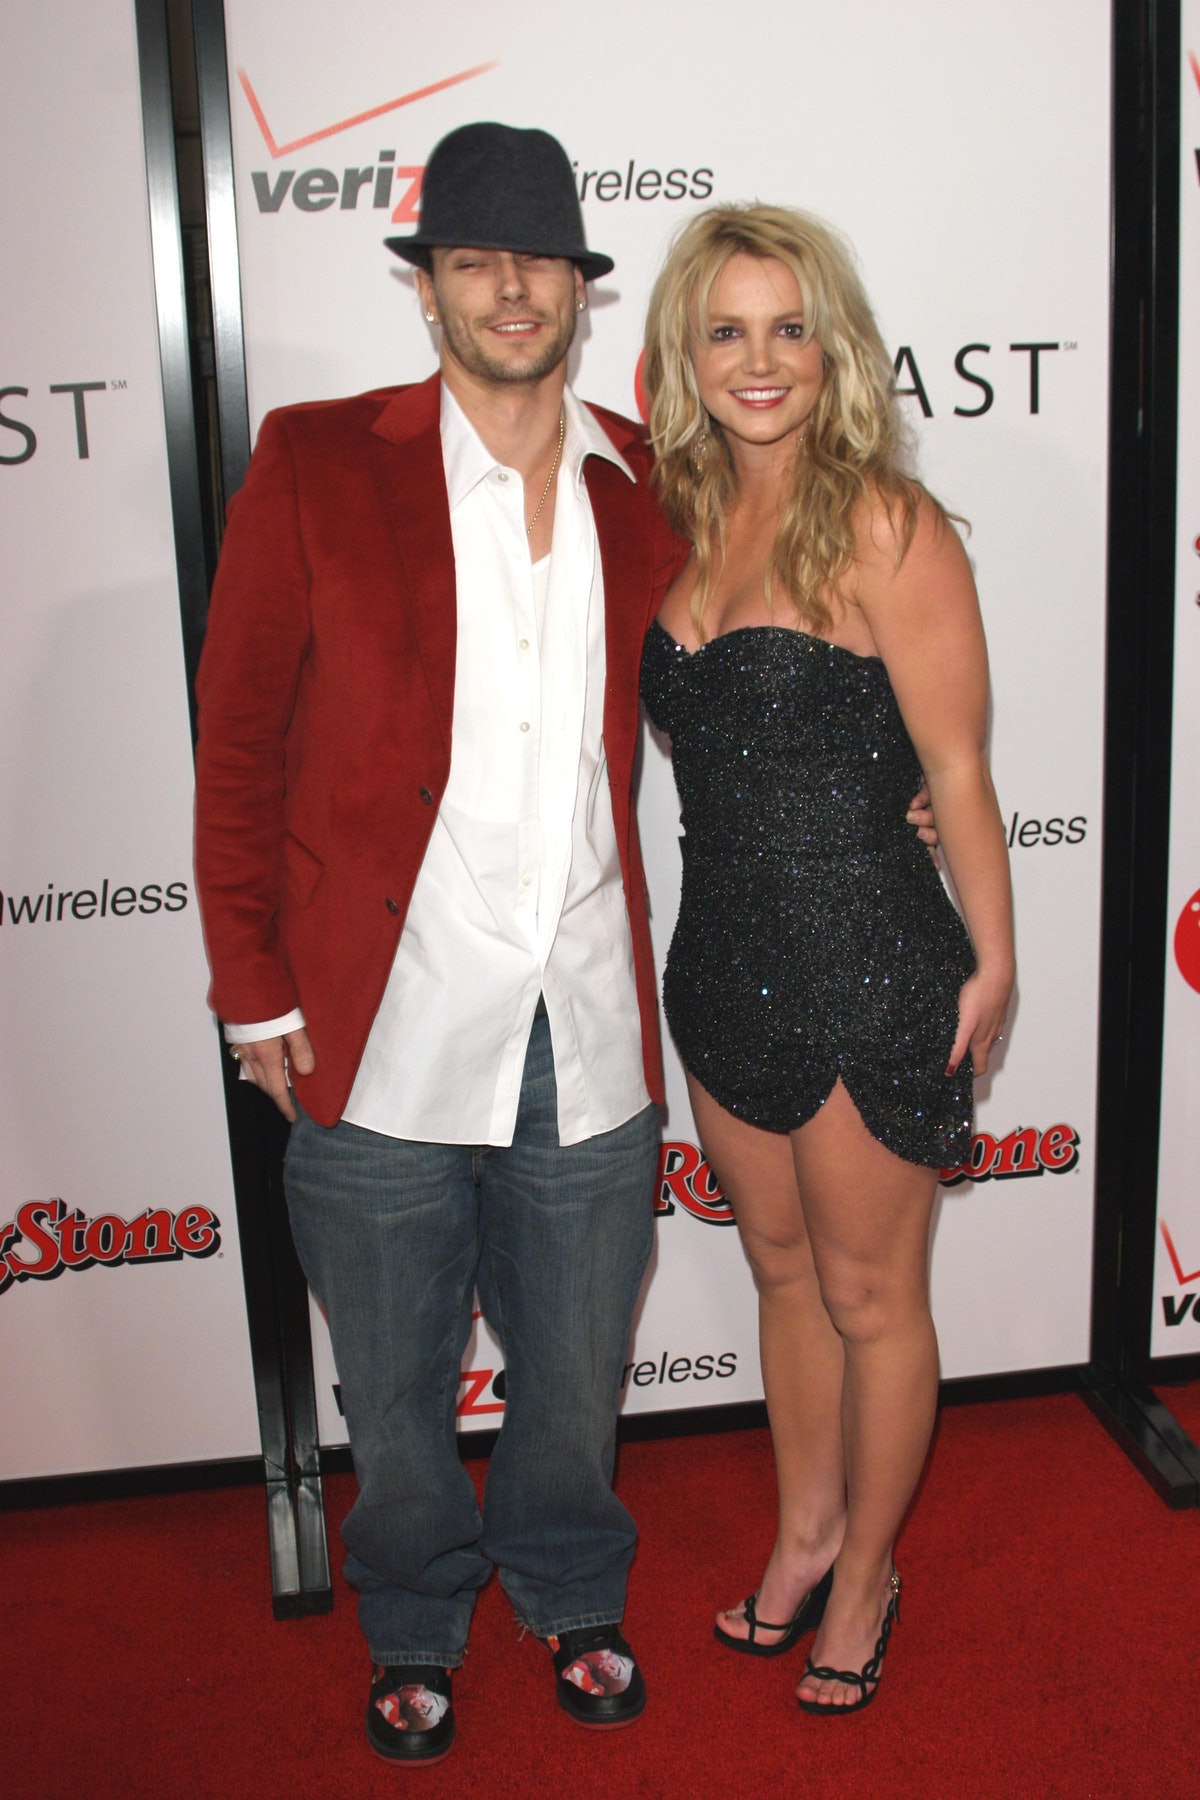 HOLLYWOOD, CA - JANUARY 13: Kevin Federline and Britney Spears attends Rolling Stone/Verizon Wireles...